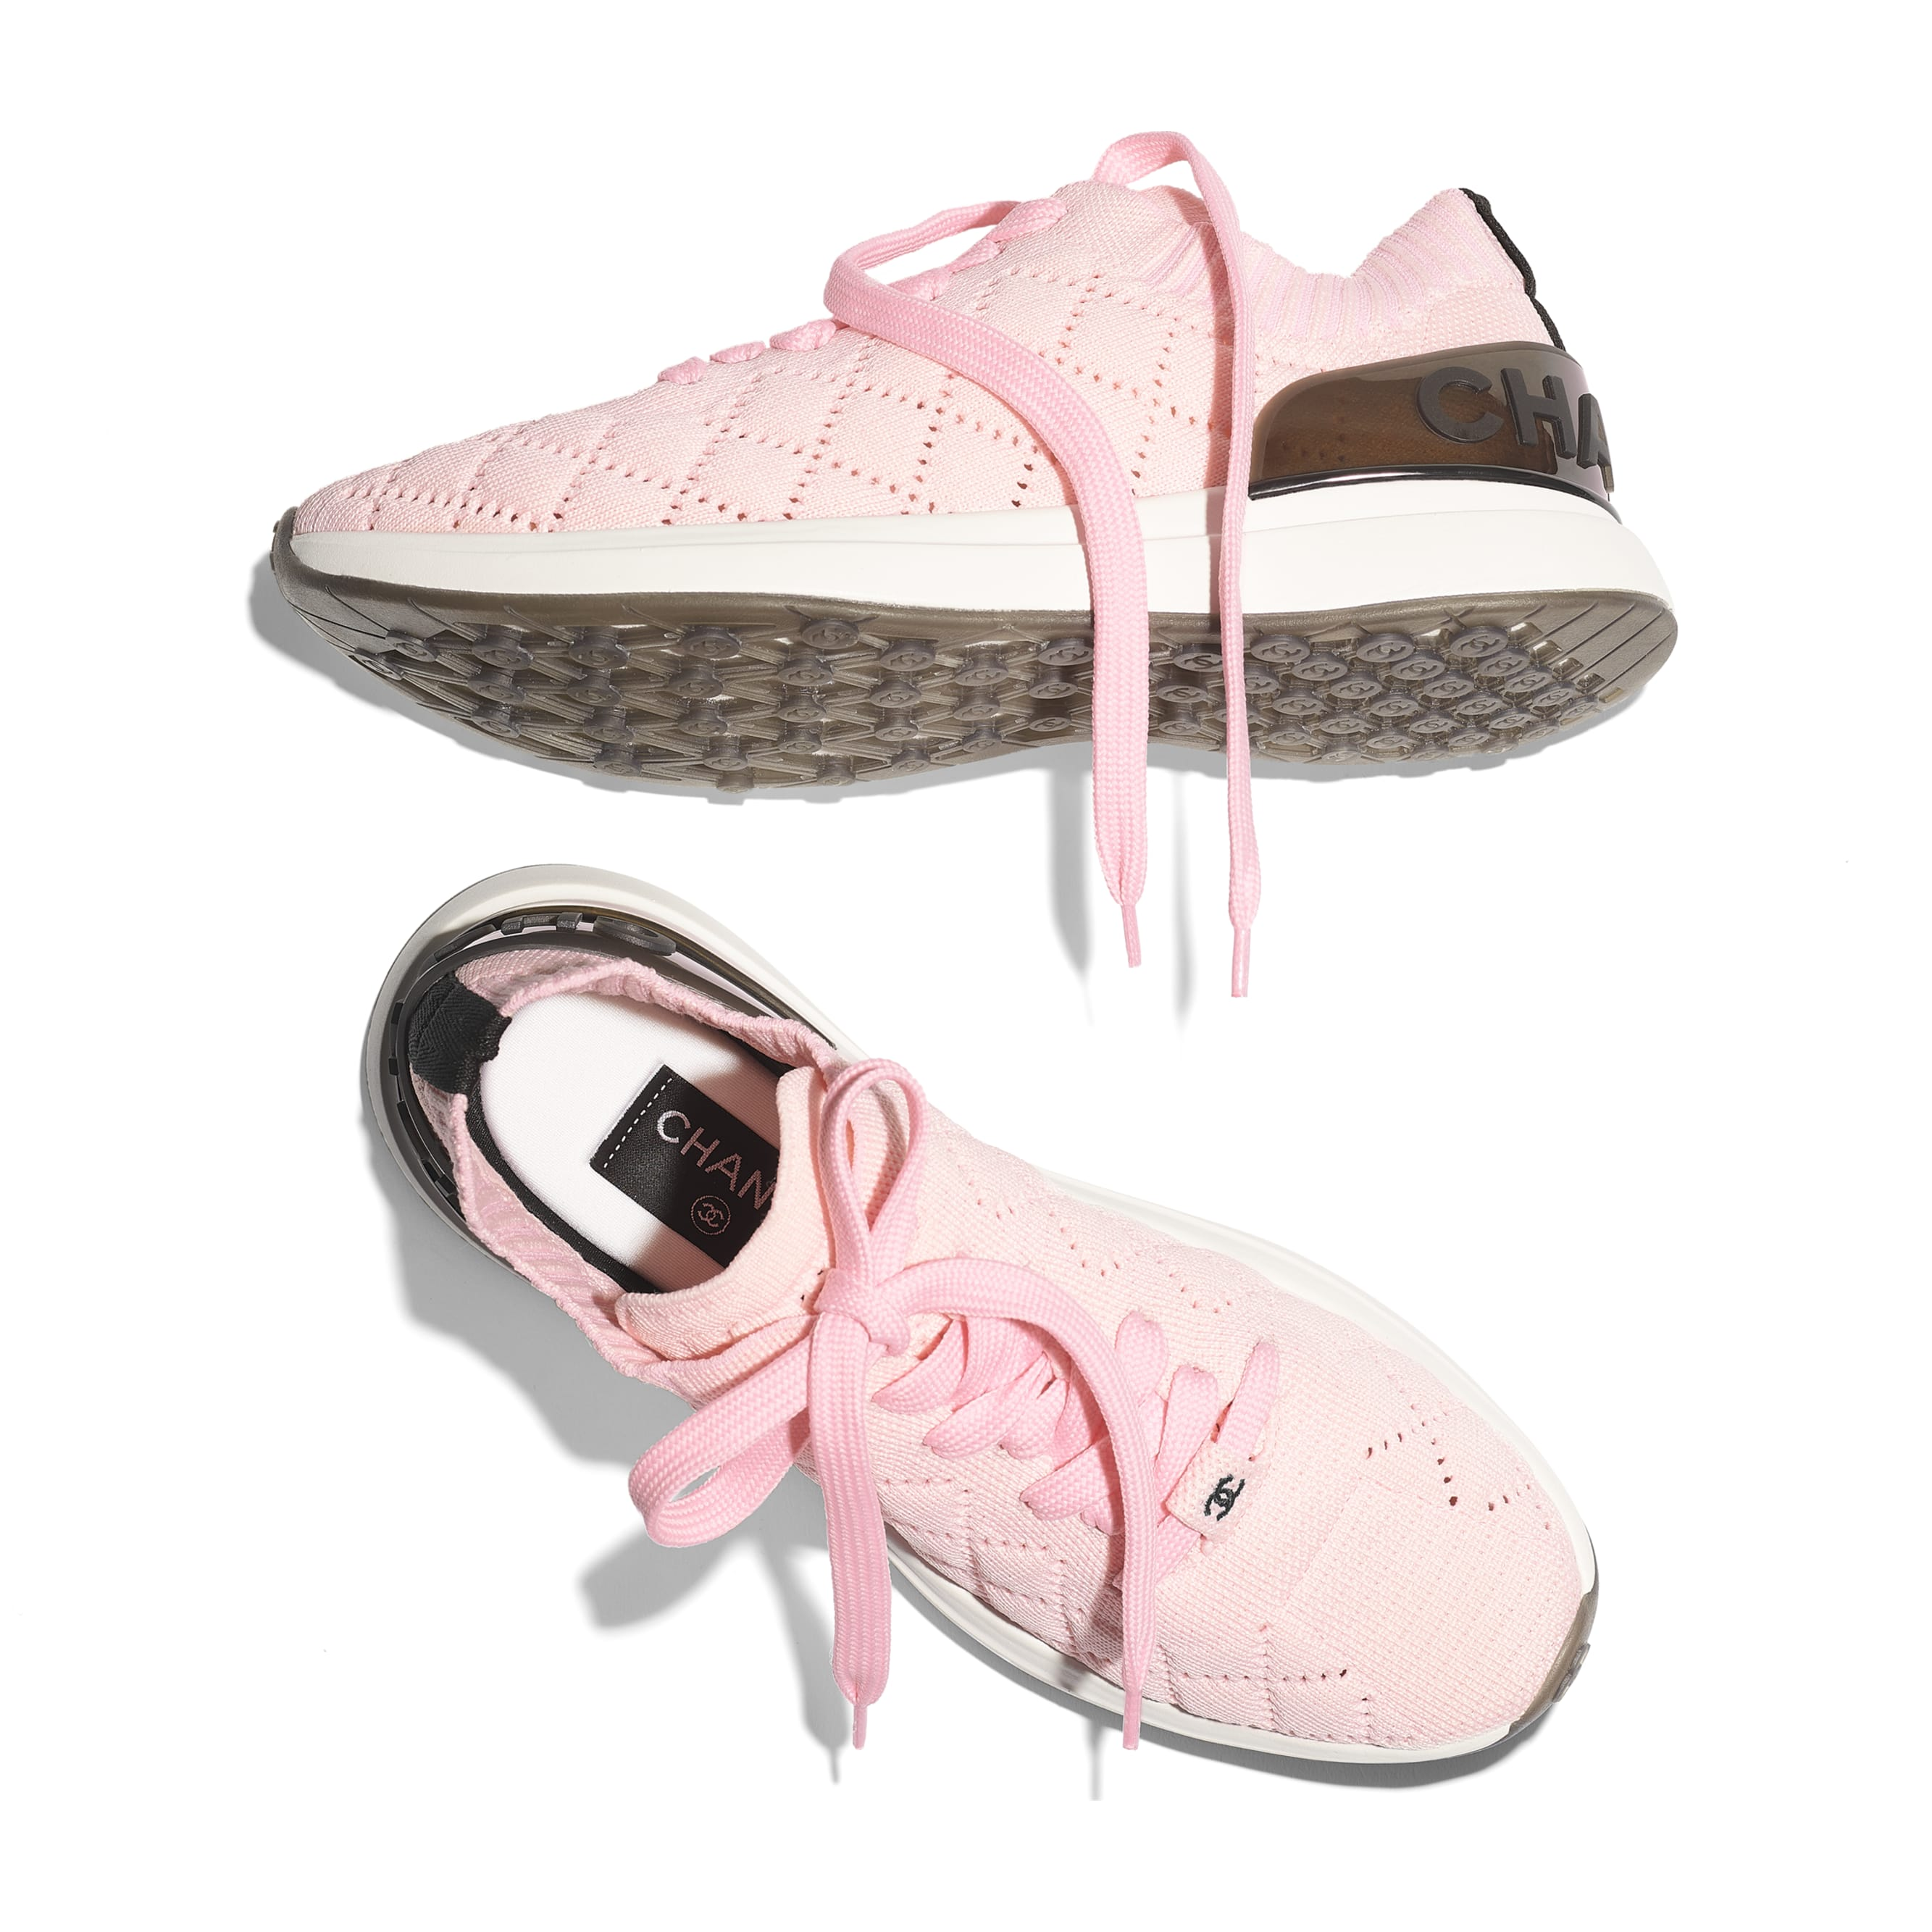 Trainers - Pink - Mixed Fibres - CHANEL - Extra view - see standard sized version